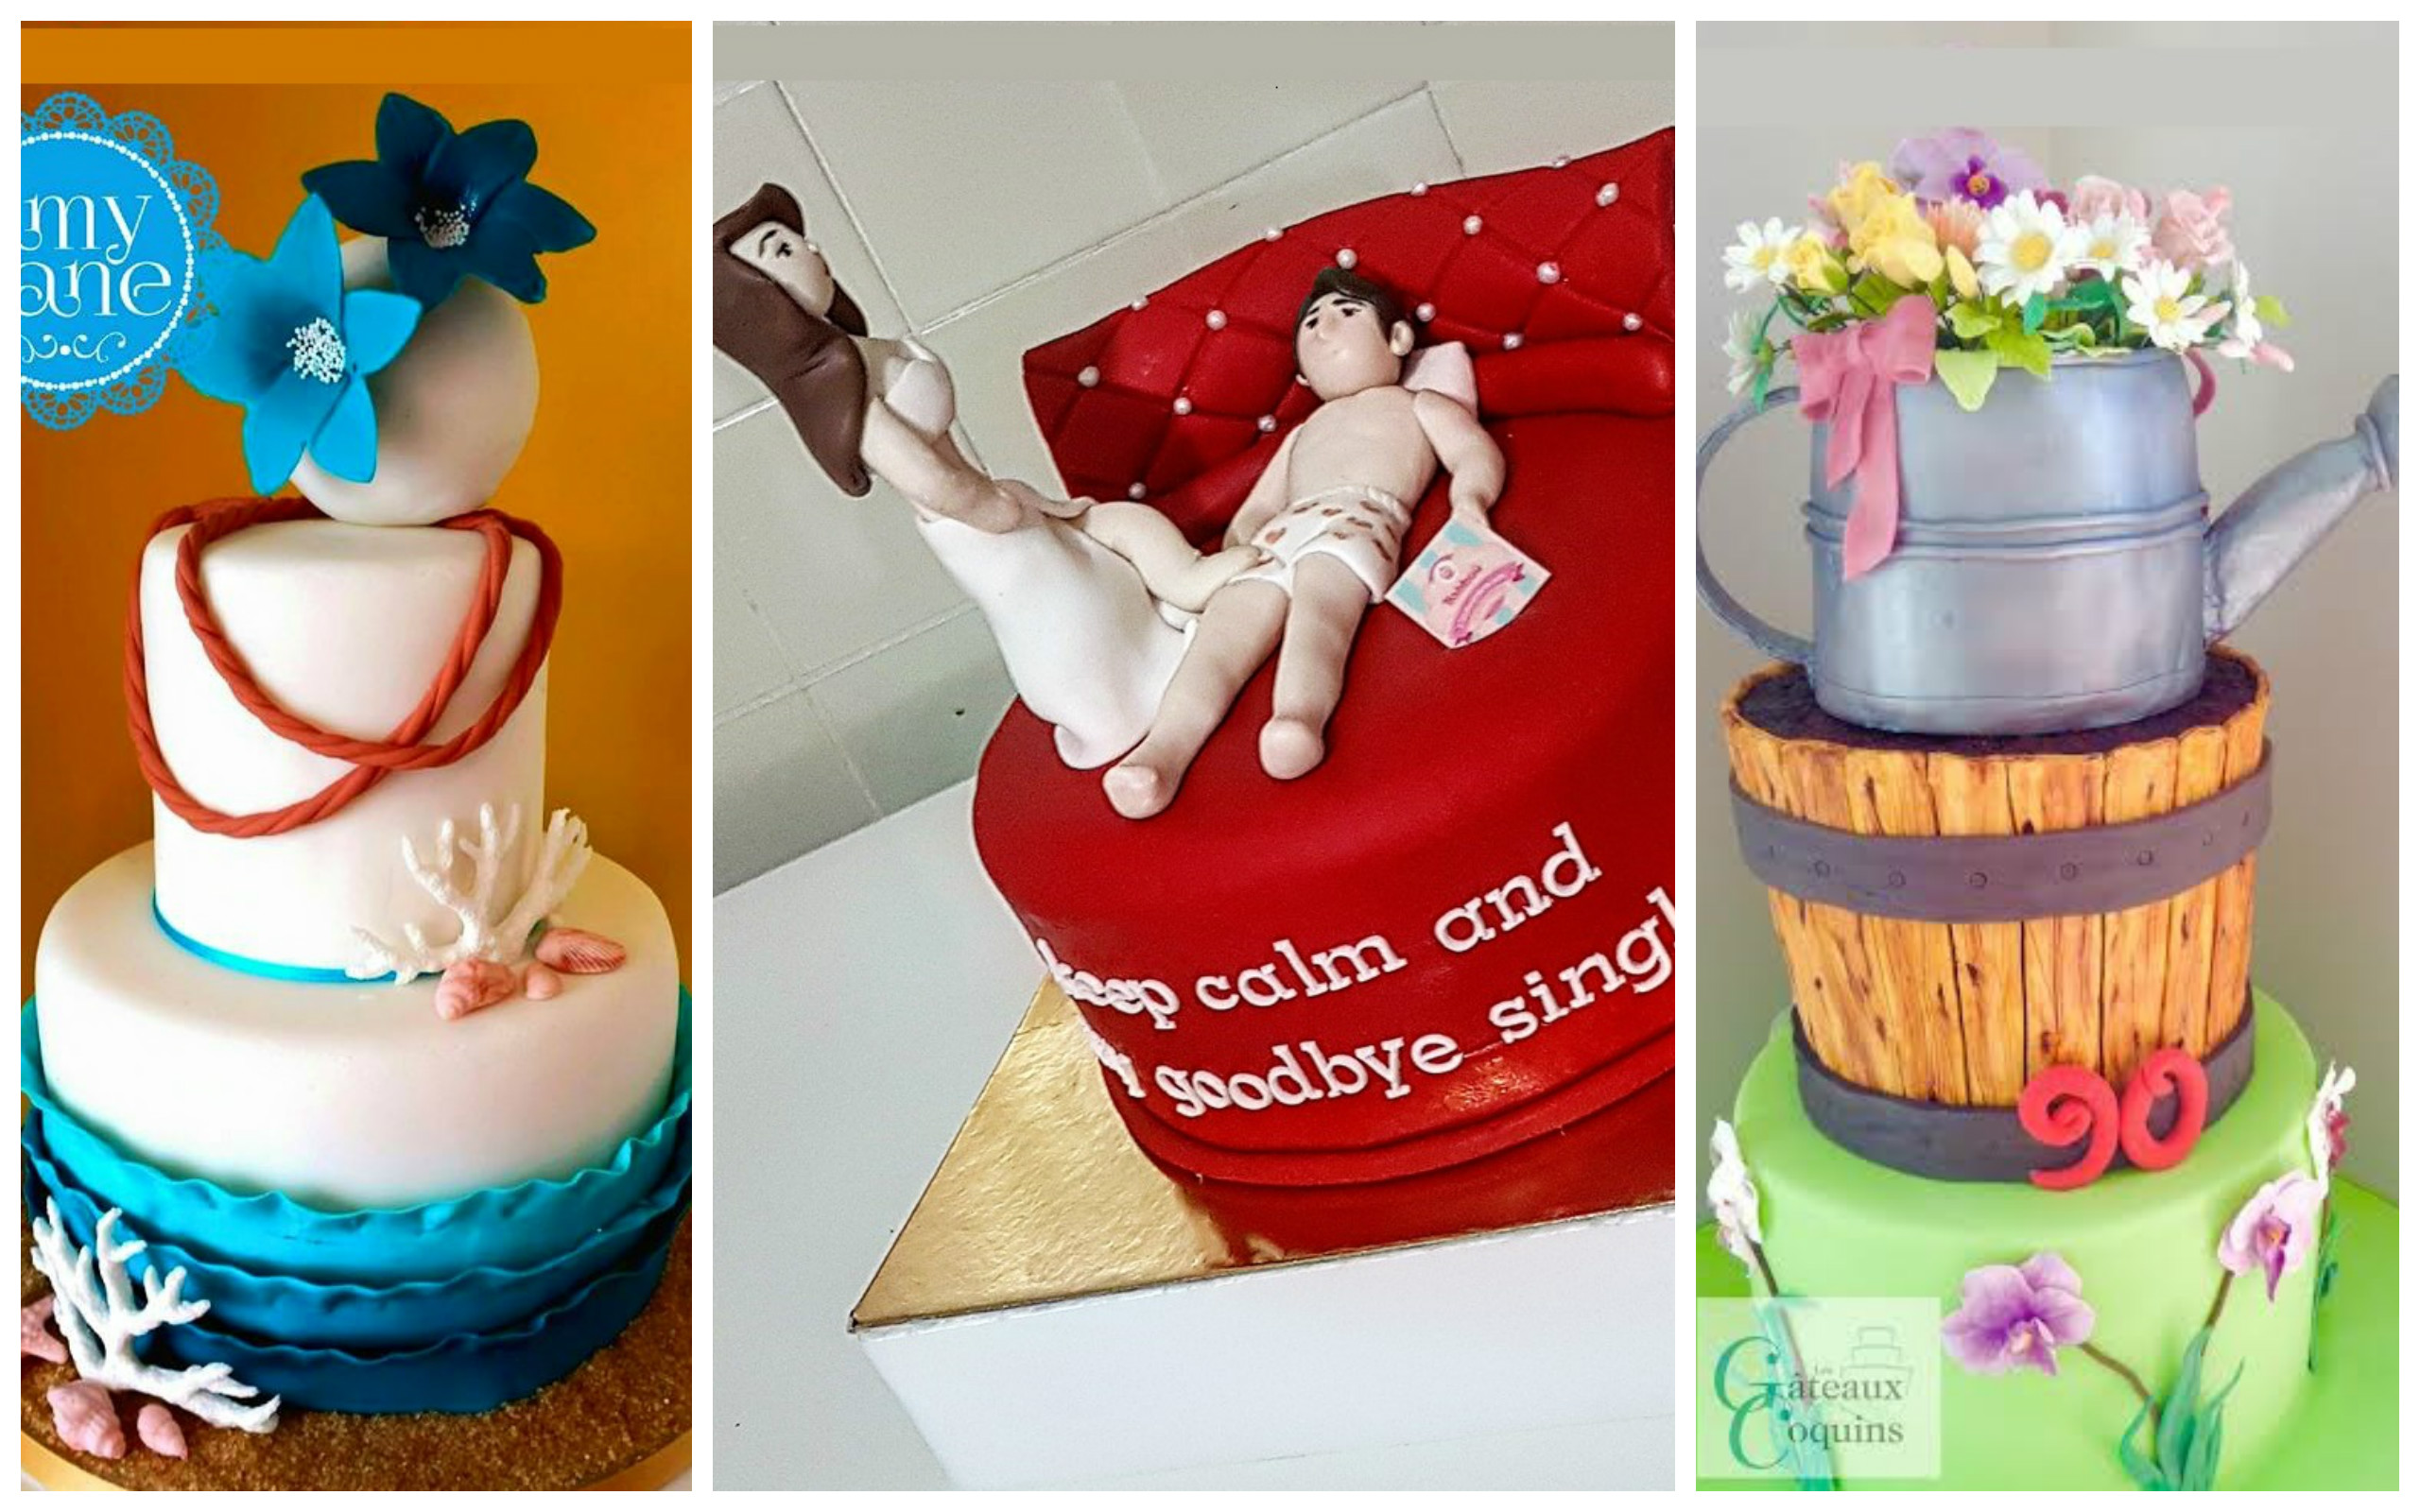 Cake Design Competition 2018 : Competition: 2016 s Super Talented Cake Artist